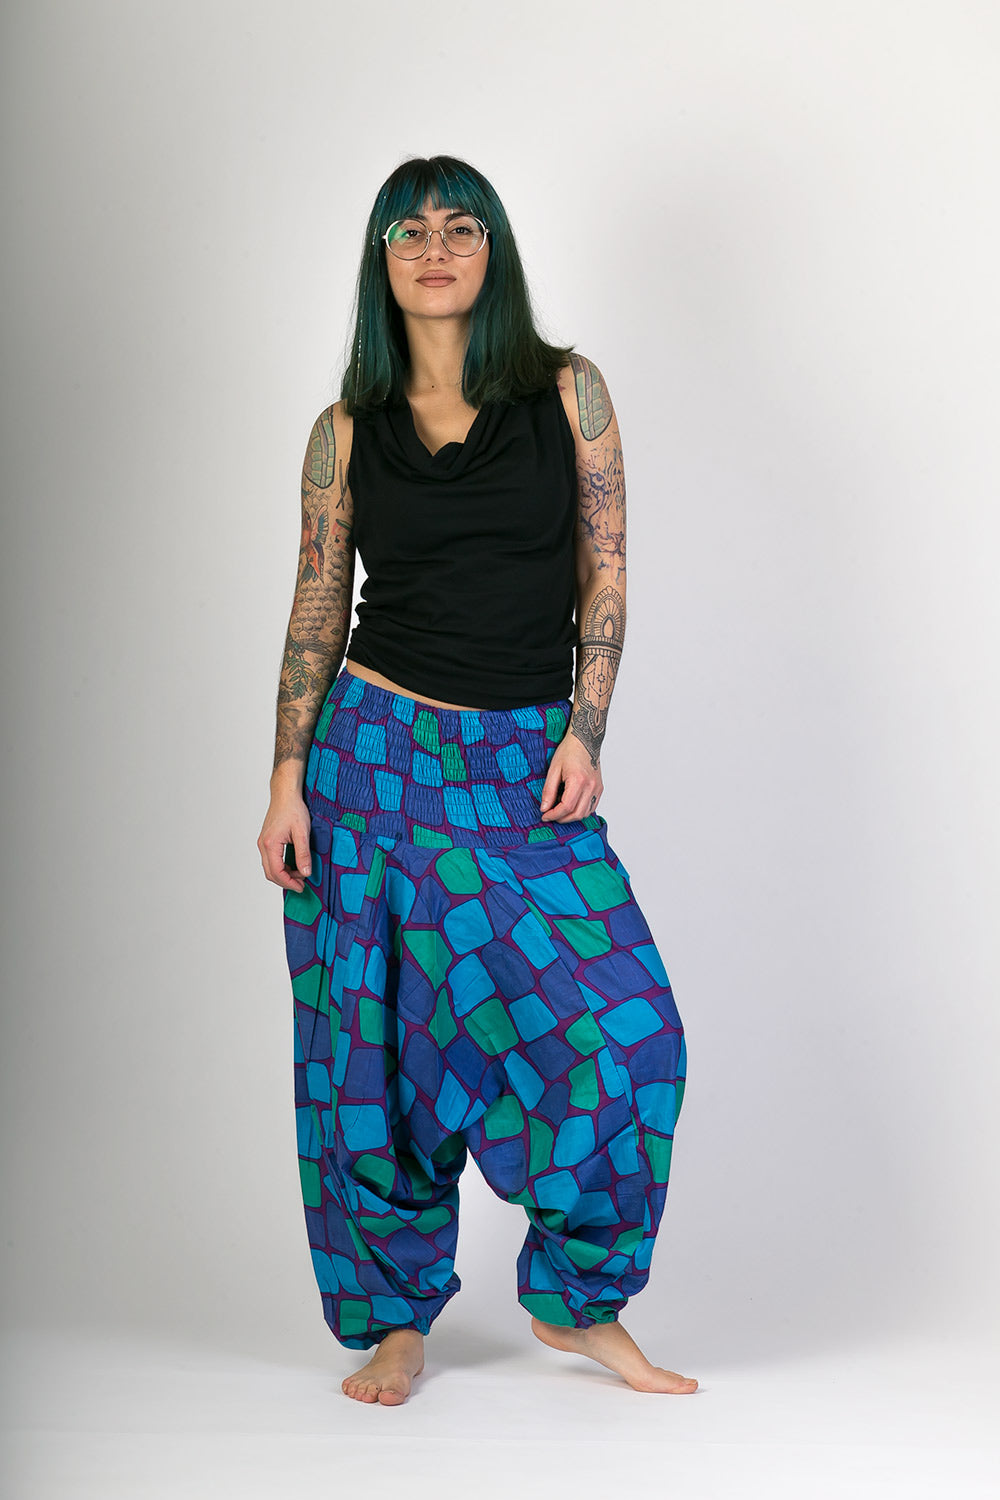 Blue-Green-Print-Cotton-Hareem-Yoga-Jumpsuit-Pants-Avalonia-Avalonia - Avalonia